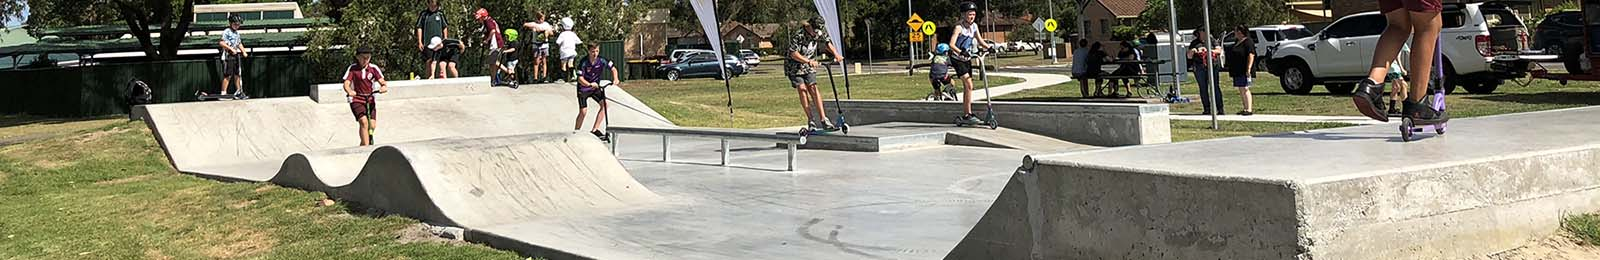 Top image skate parks - Lakeside